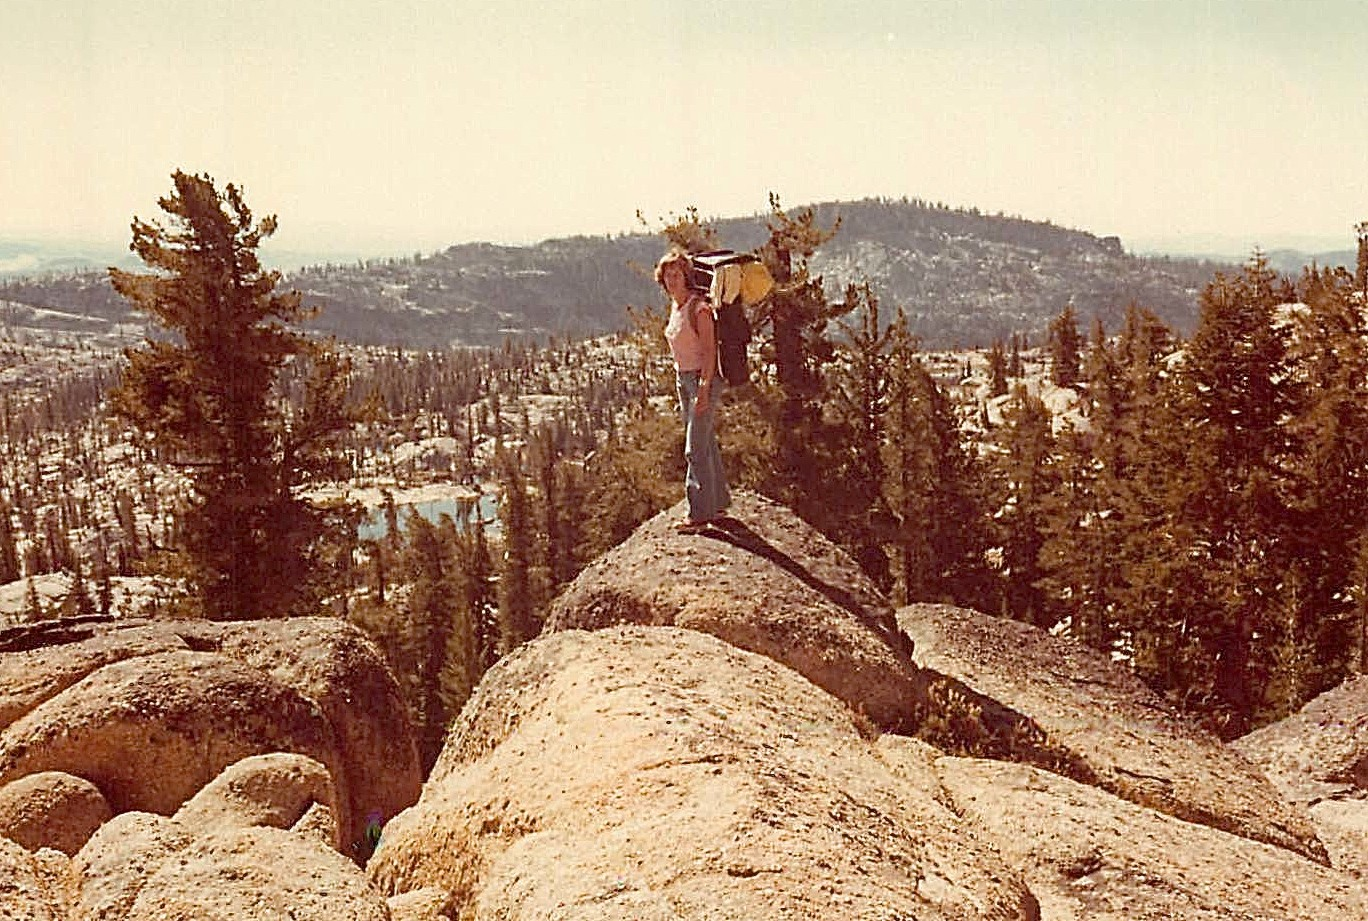 Lorraine Gudas backpacking near Emigrant Lake, 1976